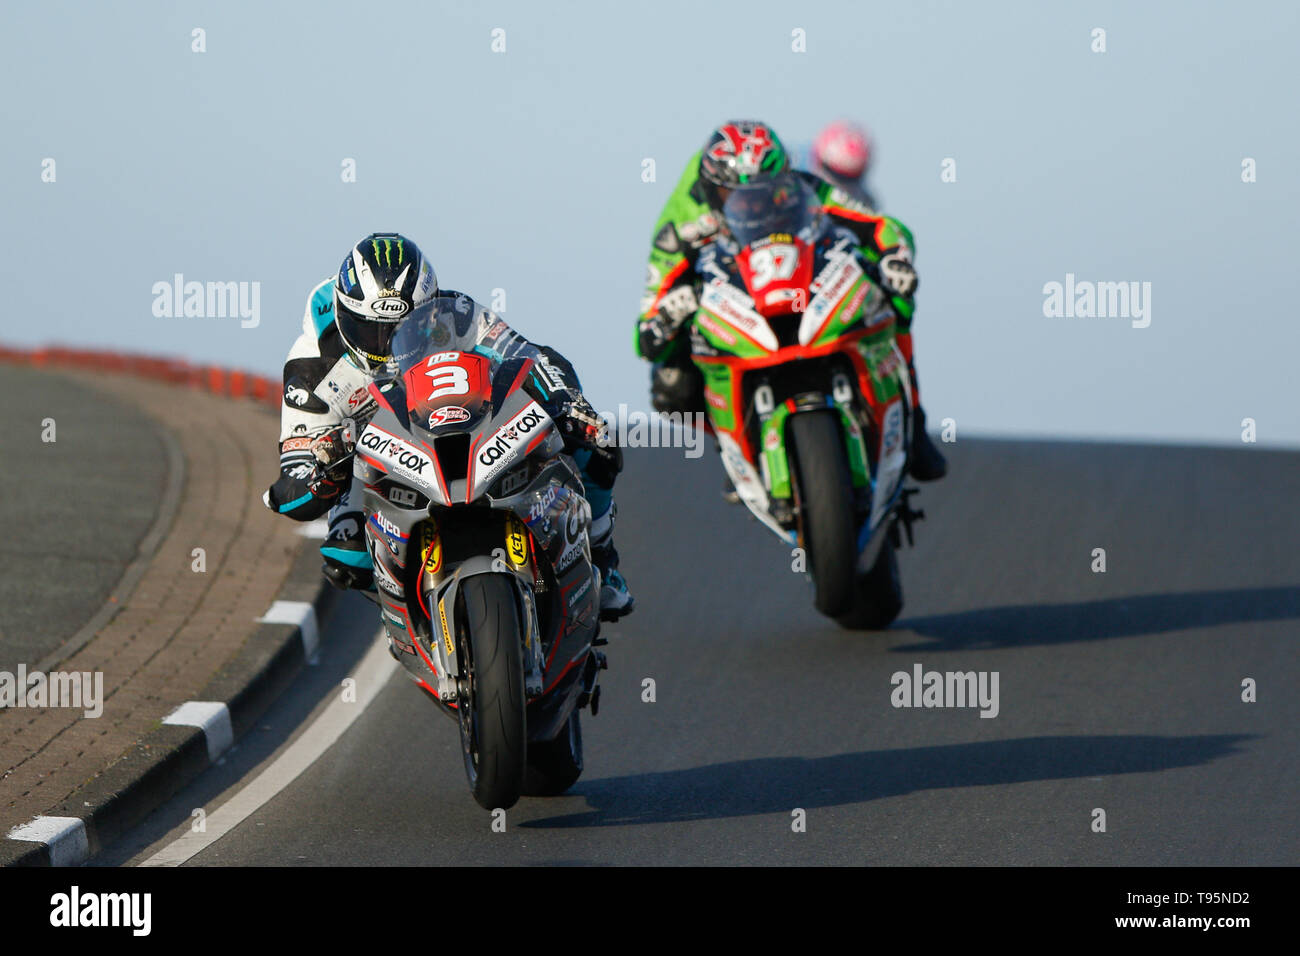 Portrush, Northern Ireland. 16th May, 2019. International North West 200 Motorcycle road racing, Thursday practice and evening racing; Michael Dunlop finishes in 3rd place in the SuperStock race on the MD Racing BMW Credit: Action Plus Sports/Alamy Live News - Stock Image